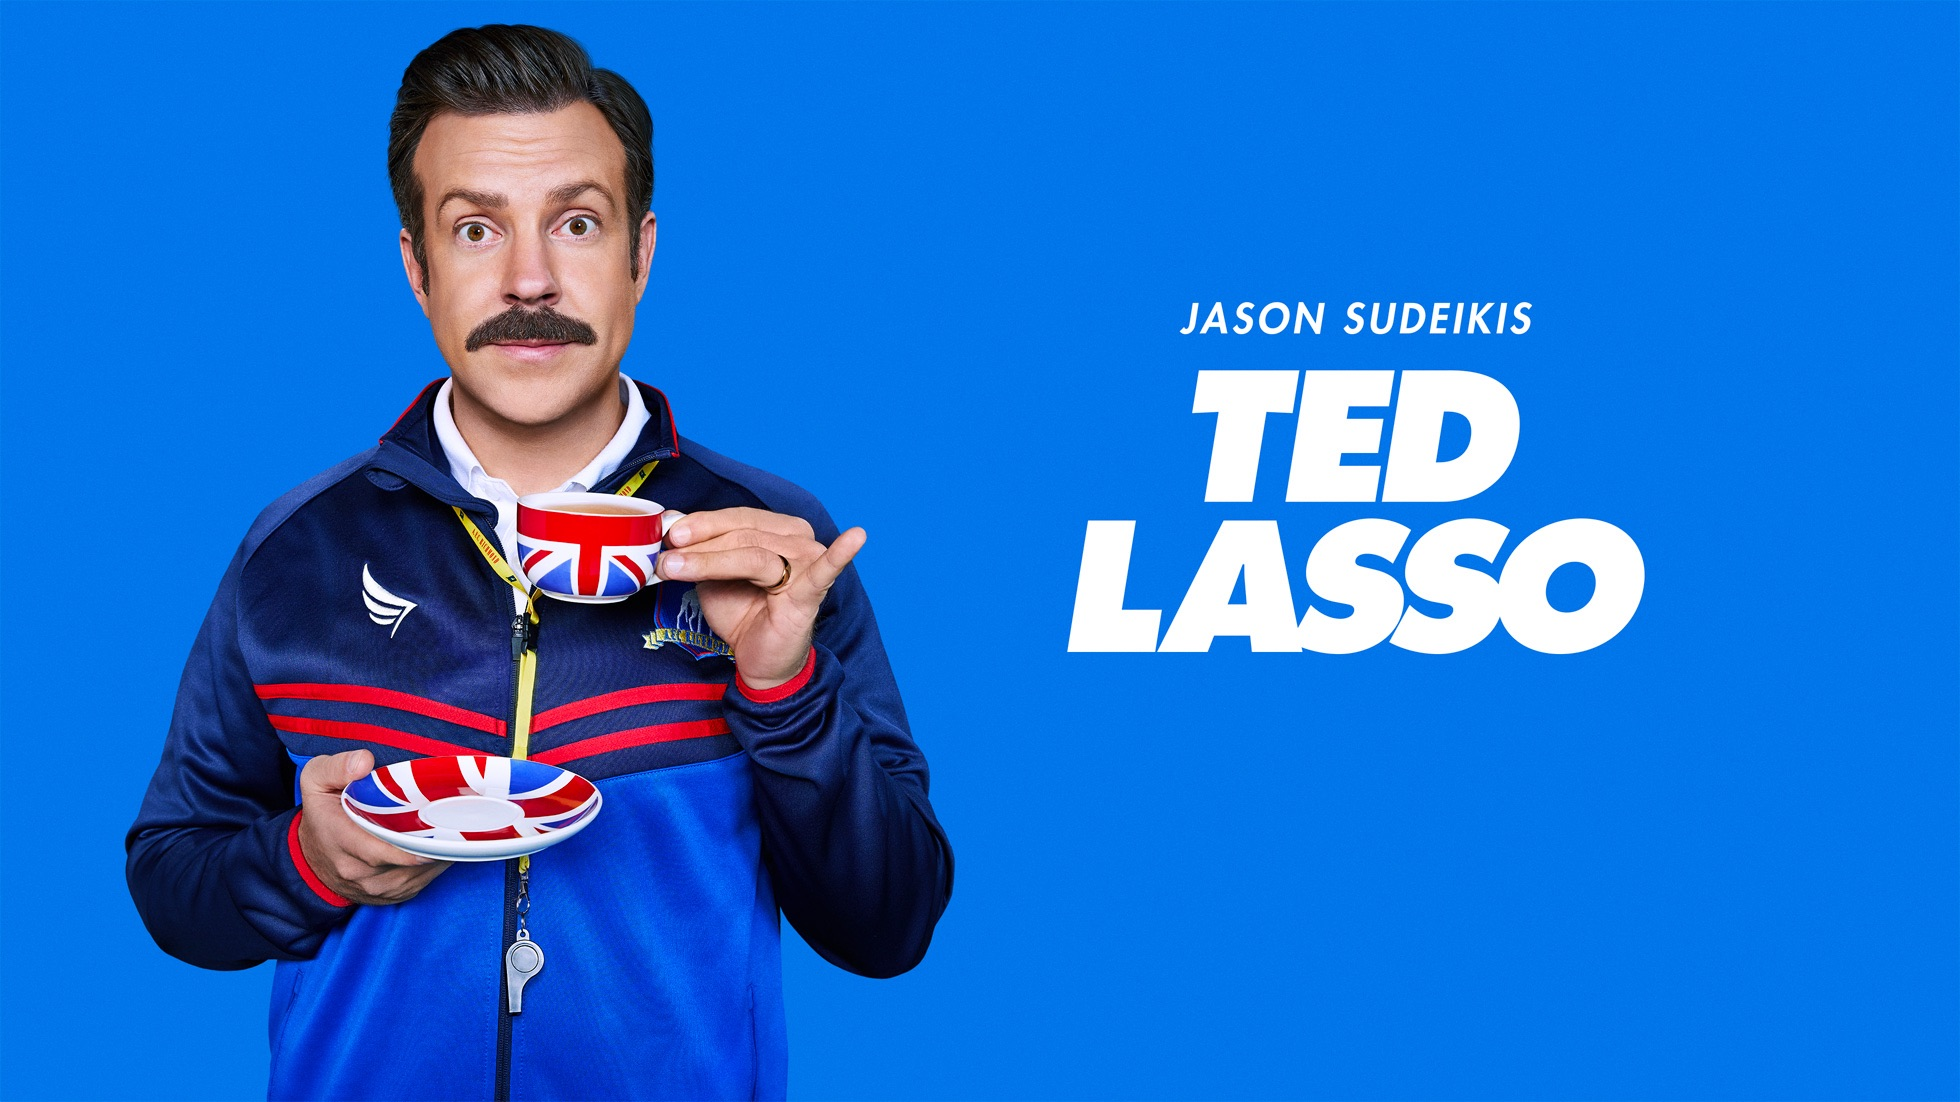 Apple TV+ Show 'Ted Lasso' Nominated for Additional Awards